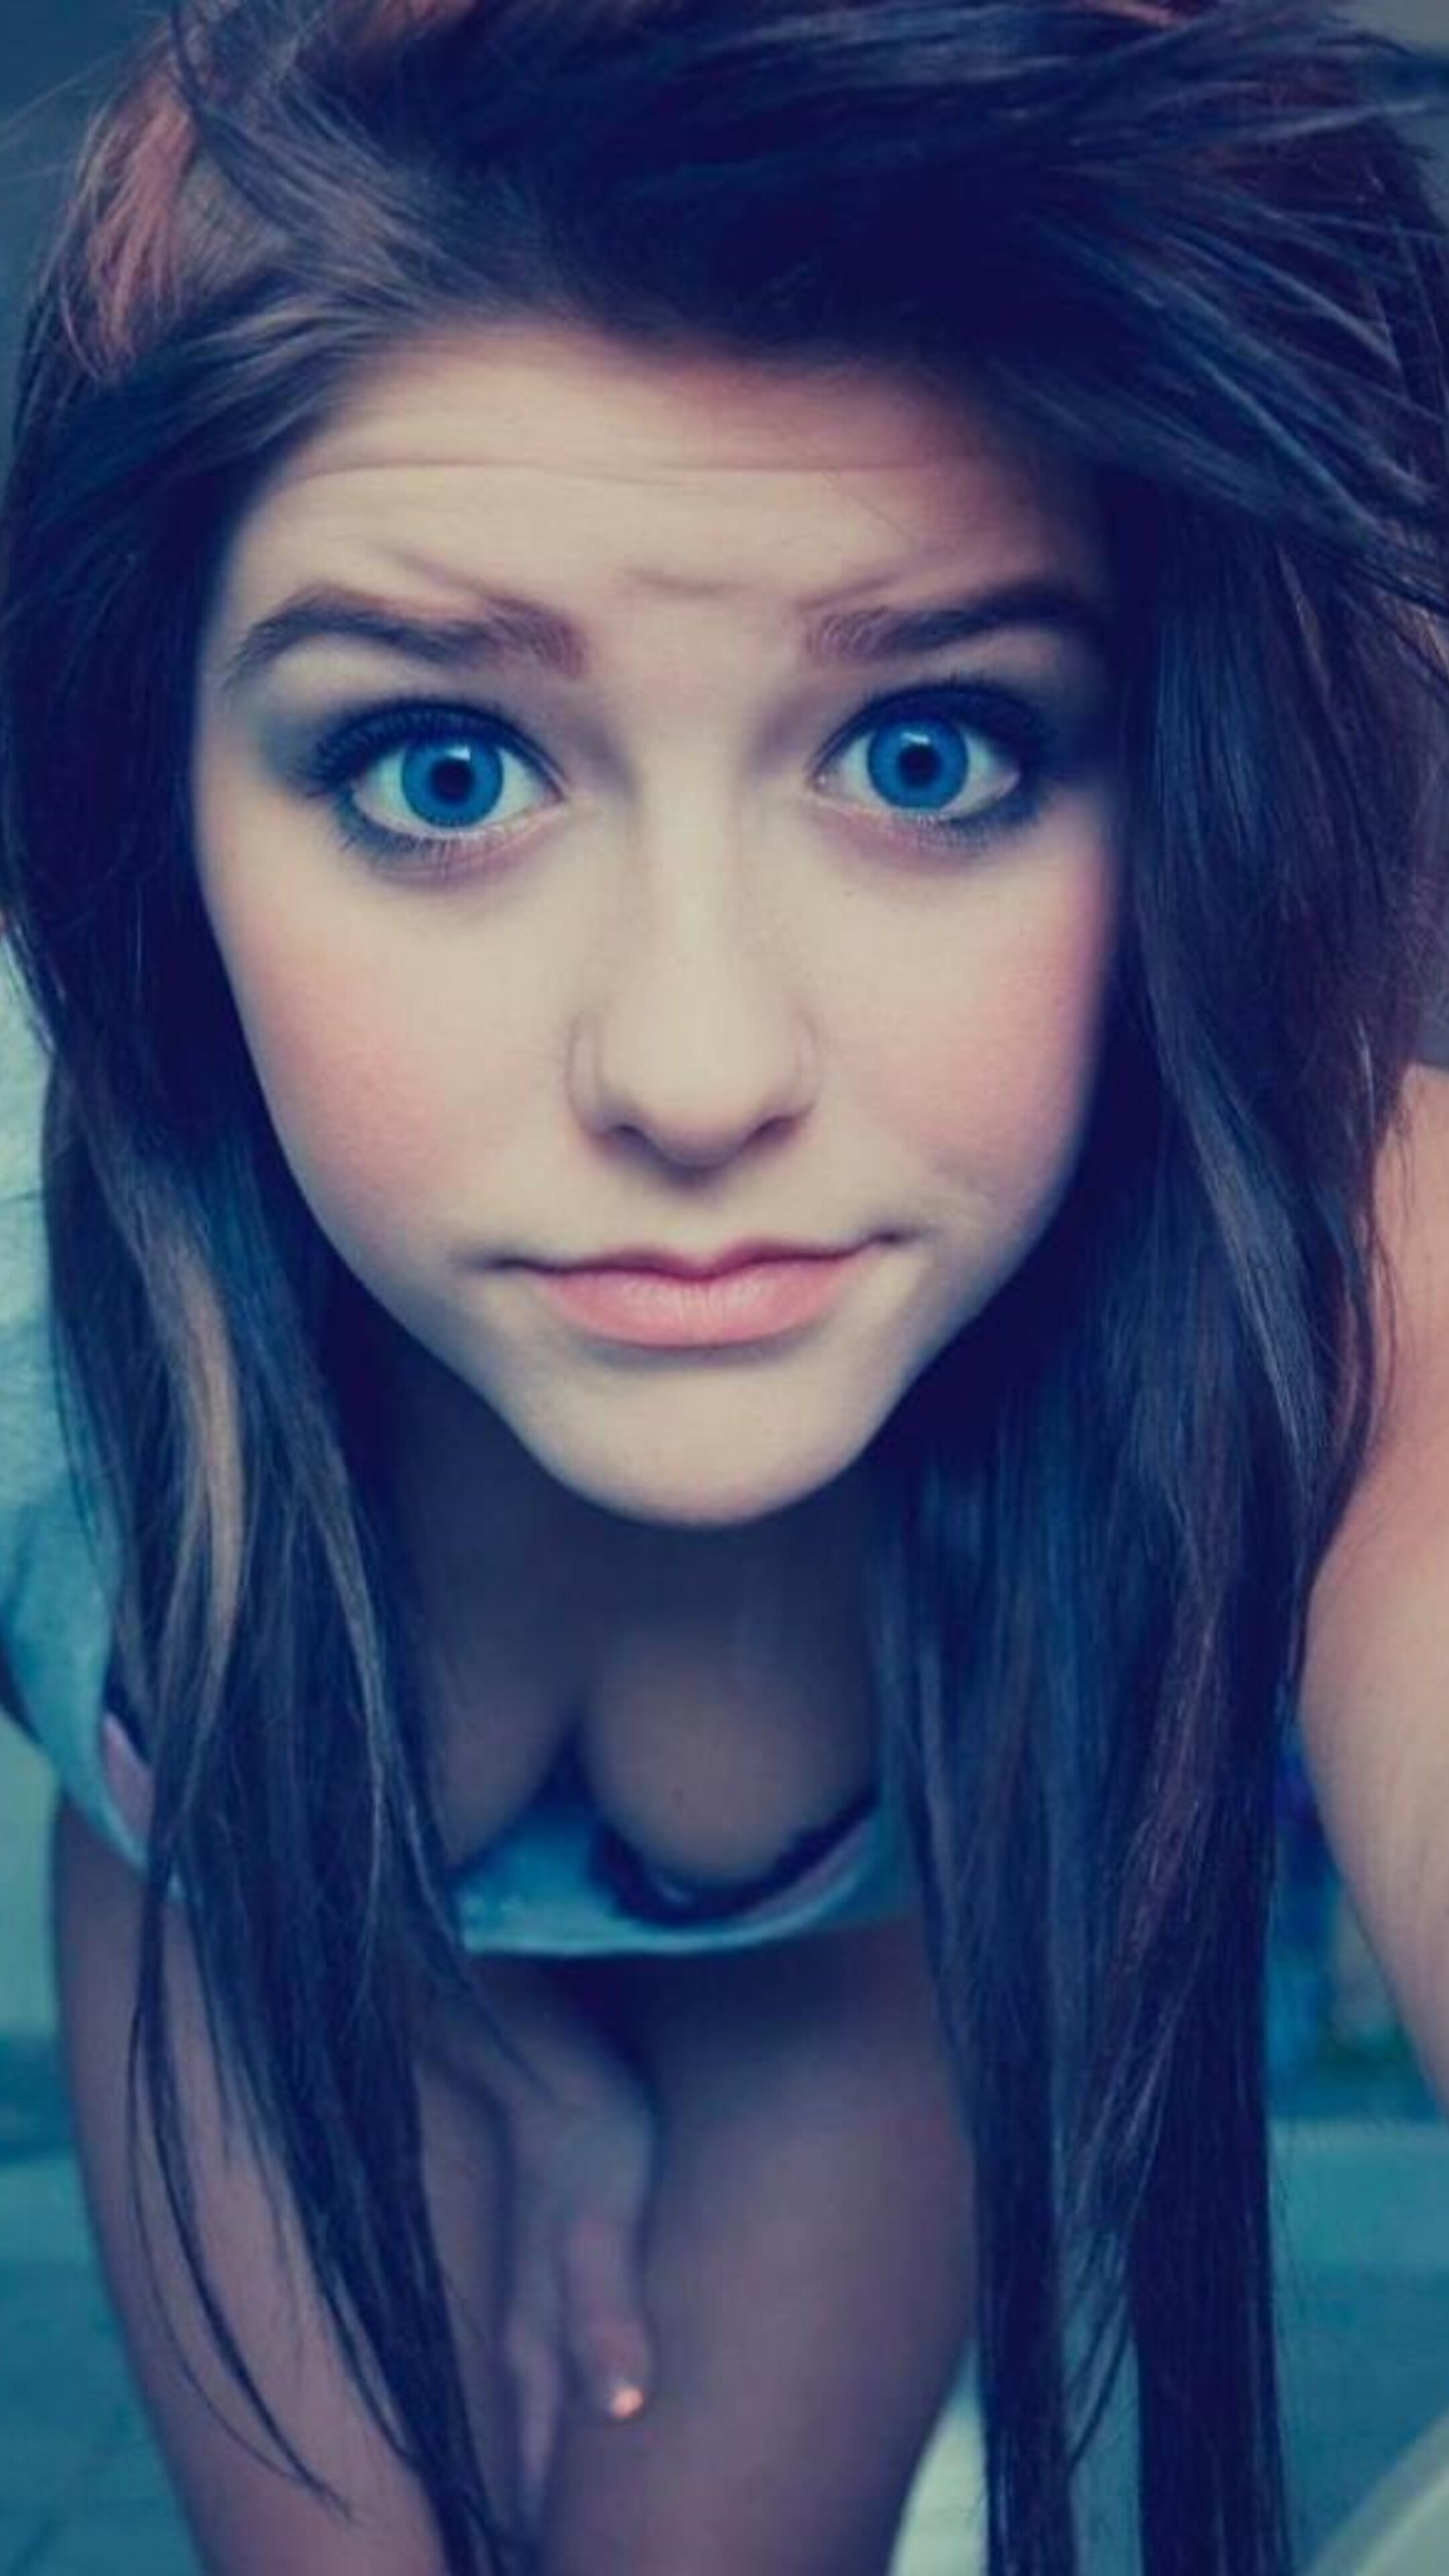 Tag For Cute teens : Portrait Of A Cute Teen Girl With